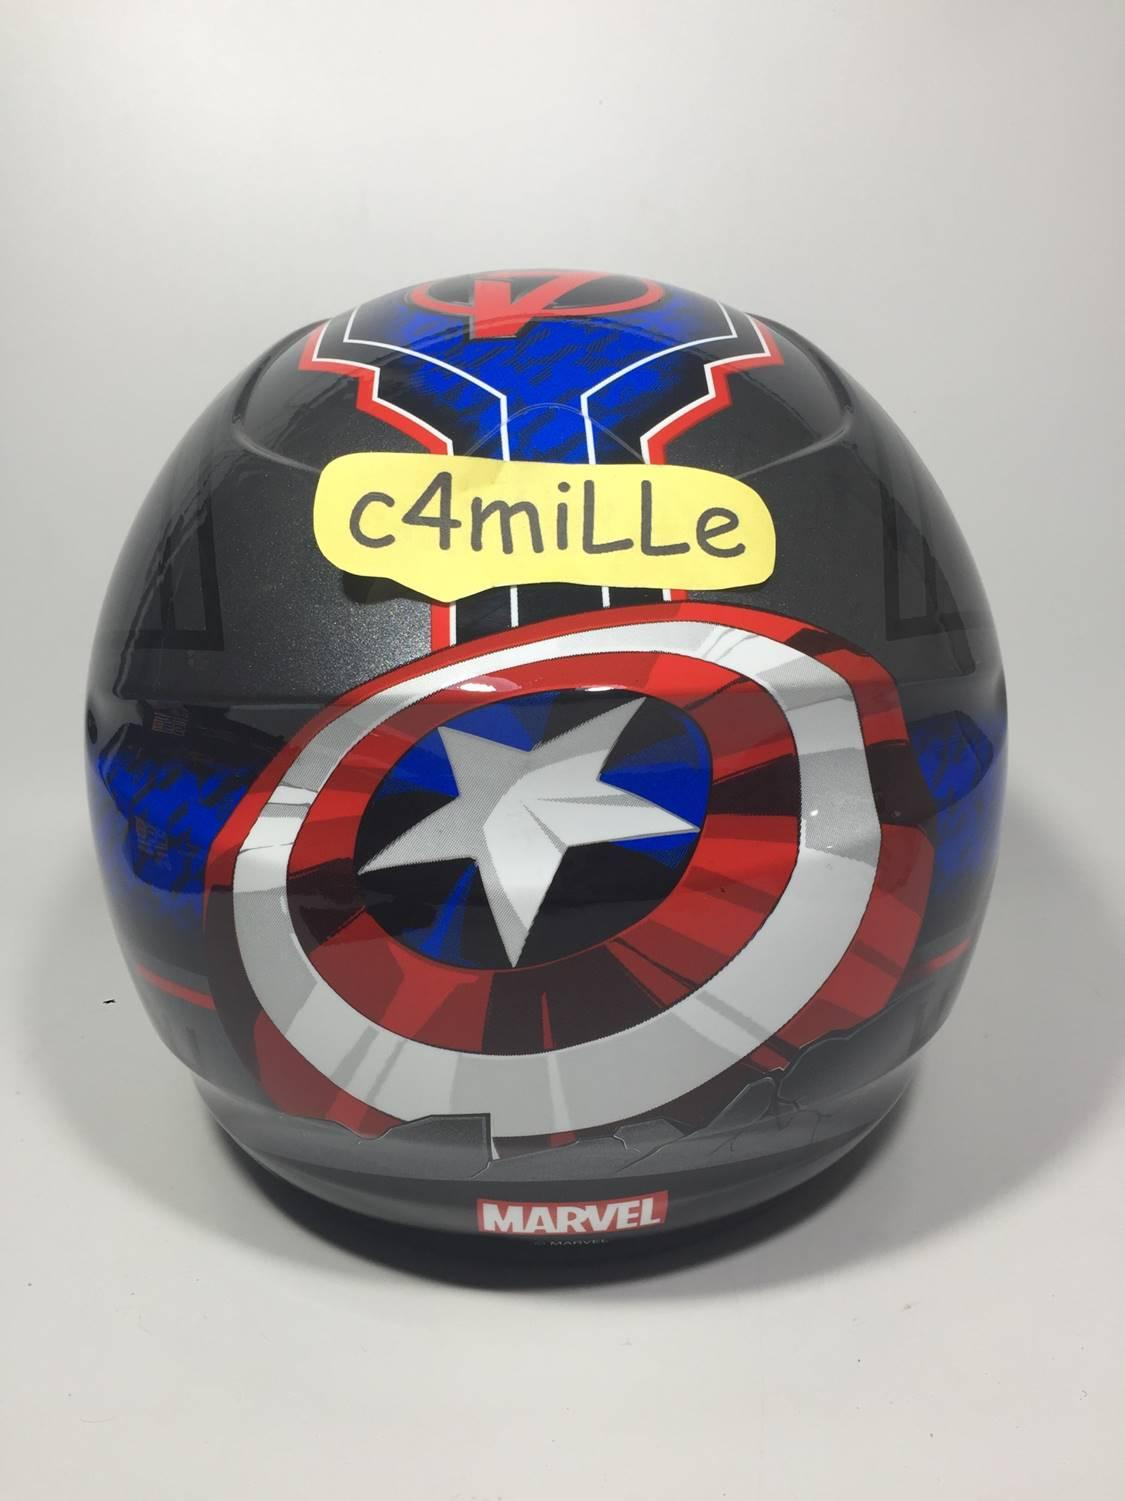 HELM BMC MILAN AVENGER CAPTAIN AMERICA #02 GRAPHIC METALIC HALF FACE